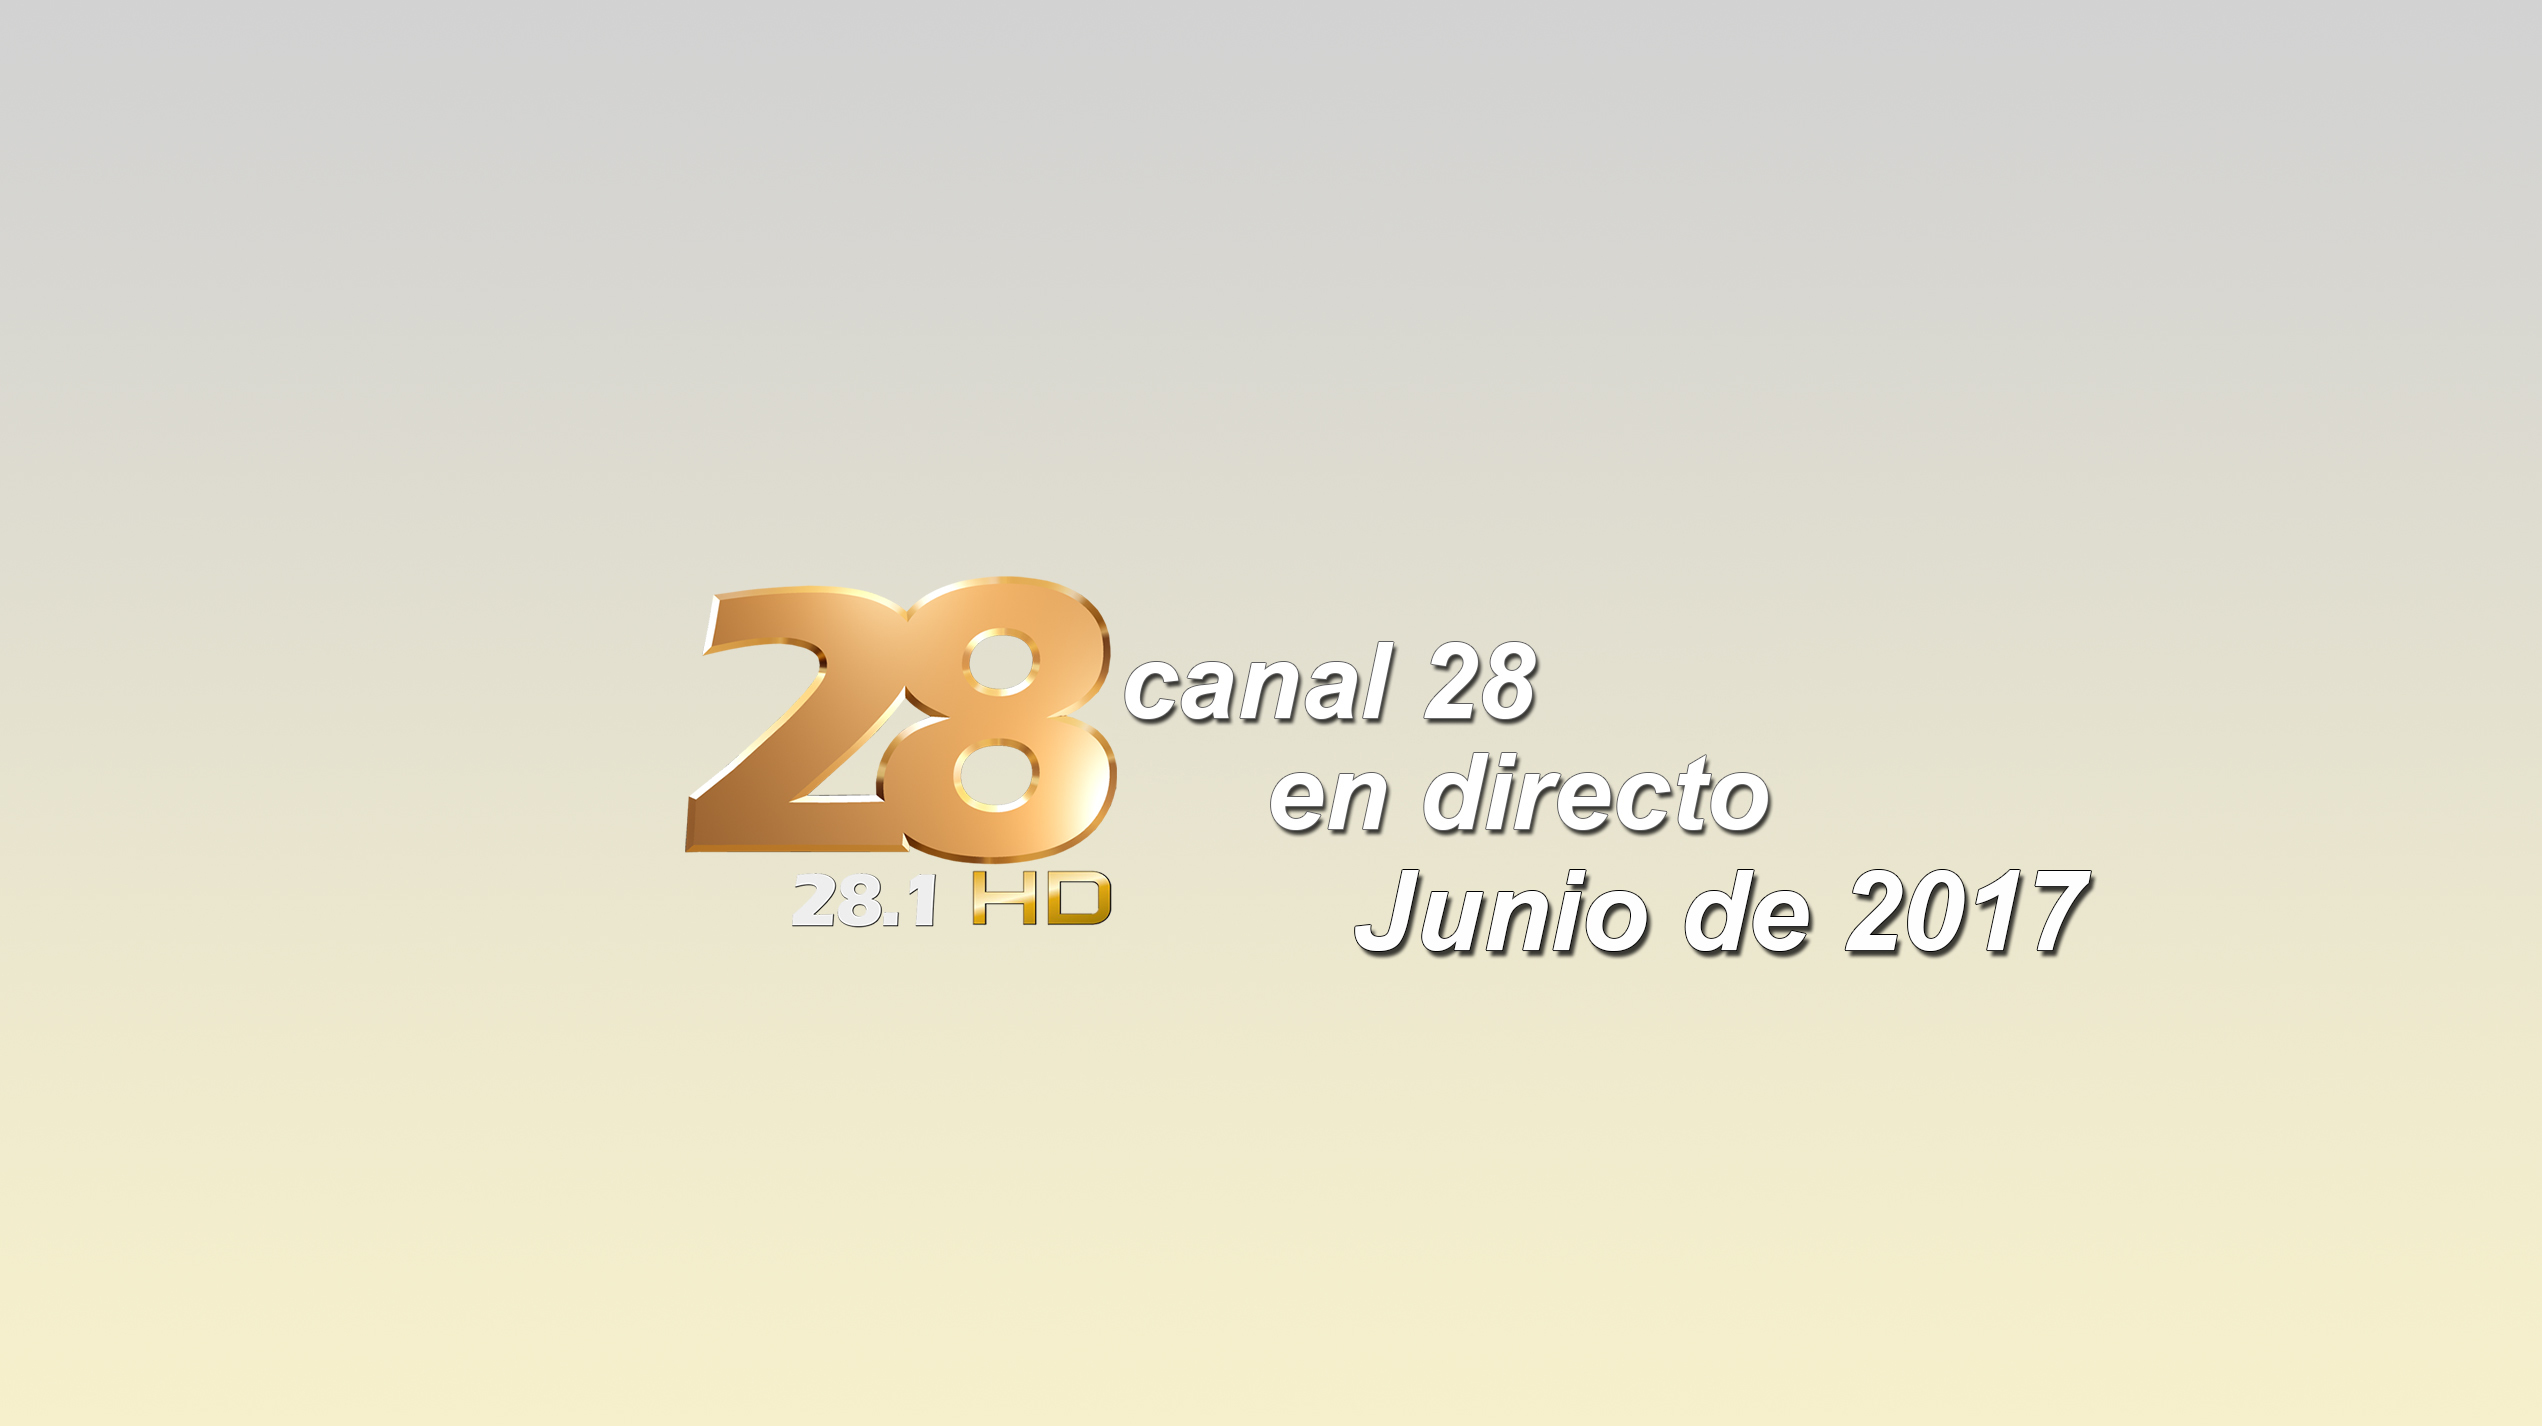 CANAL 28 JUNIO 2017 on Livestream